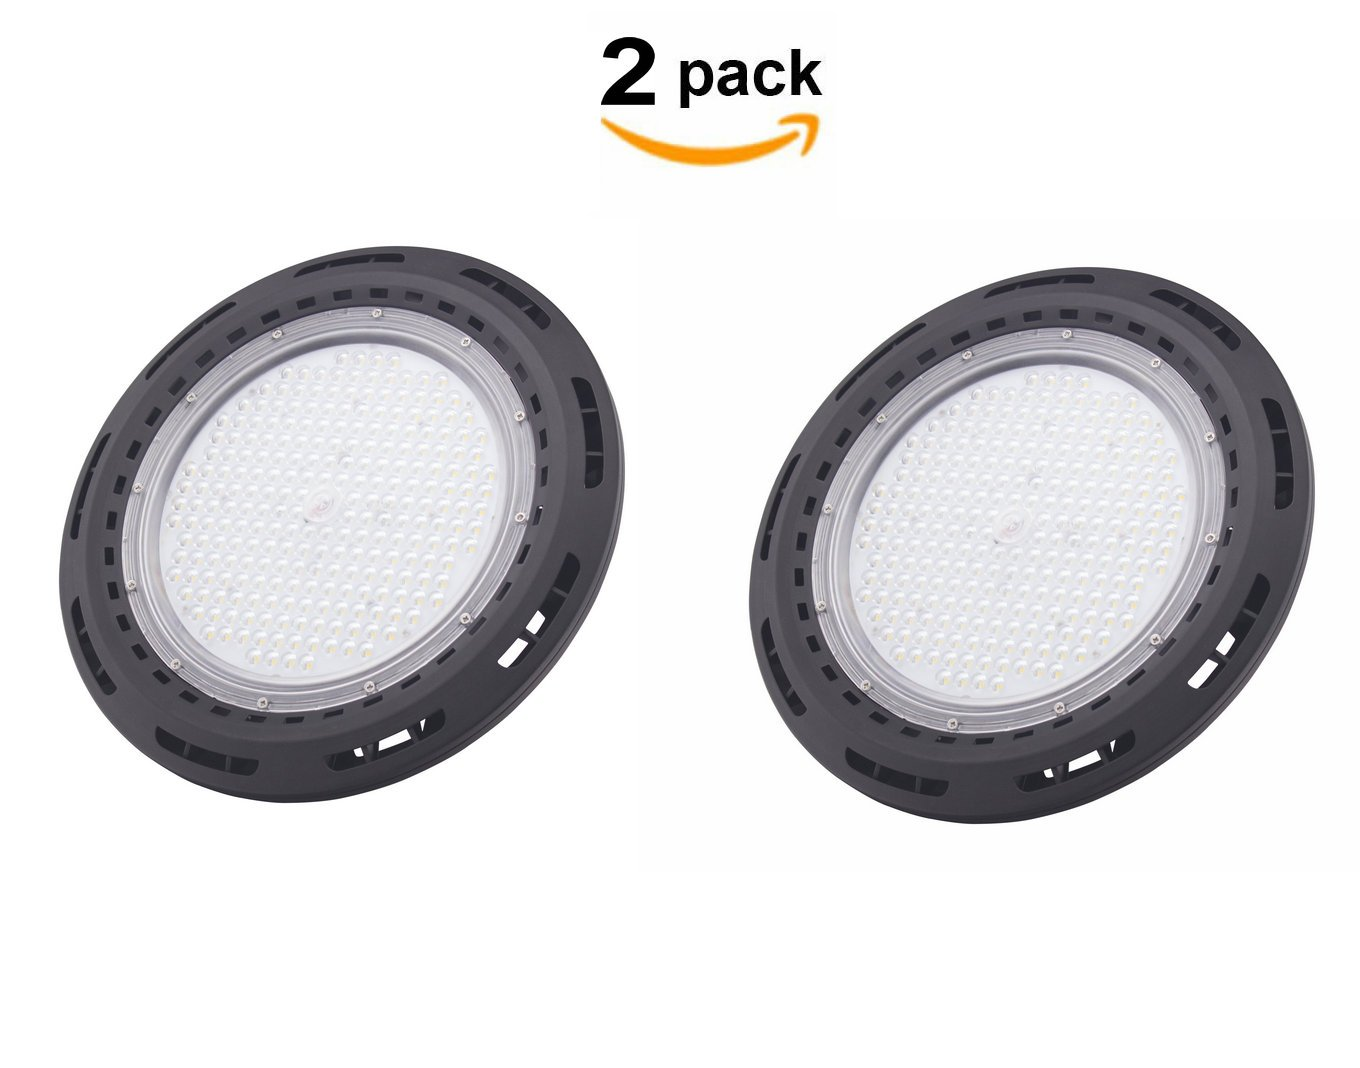 CY LED 100W UFO LED High Bay Lighting, UL Listed, 250W HPS/MH Bulbs Equivalent, 10500lm, Waterproof, Daylight White, 6000K, 120¡ã Beam, Super Bright Commercial Lighting, LED High Bay Lights Pack Of 2